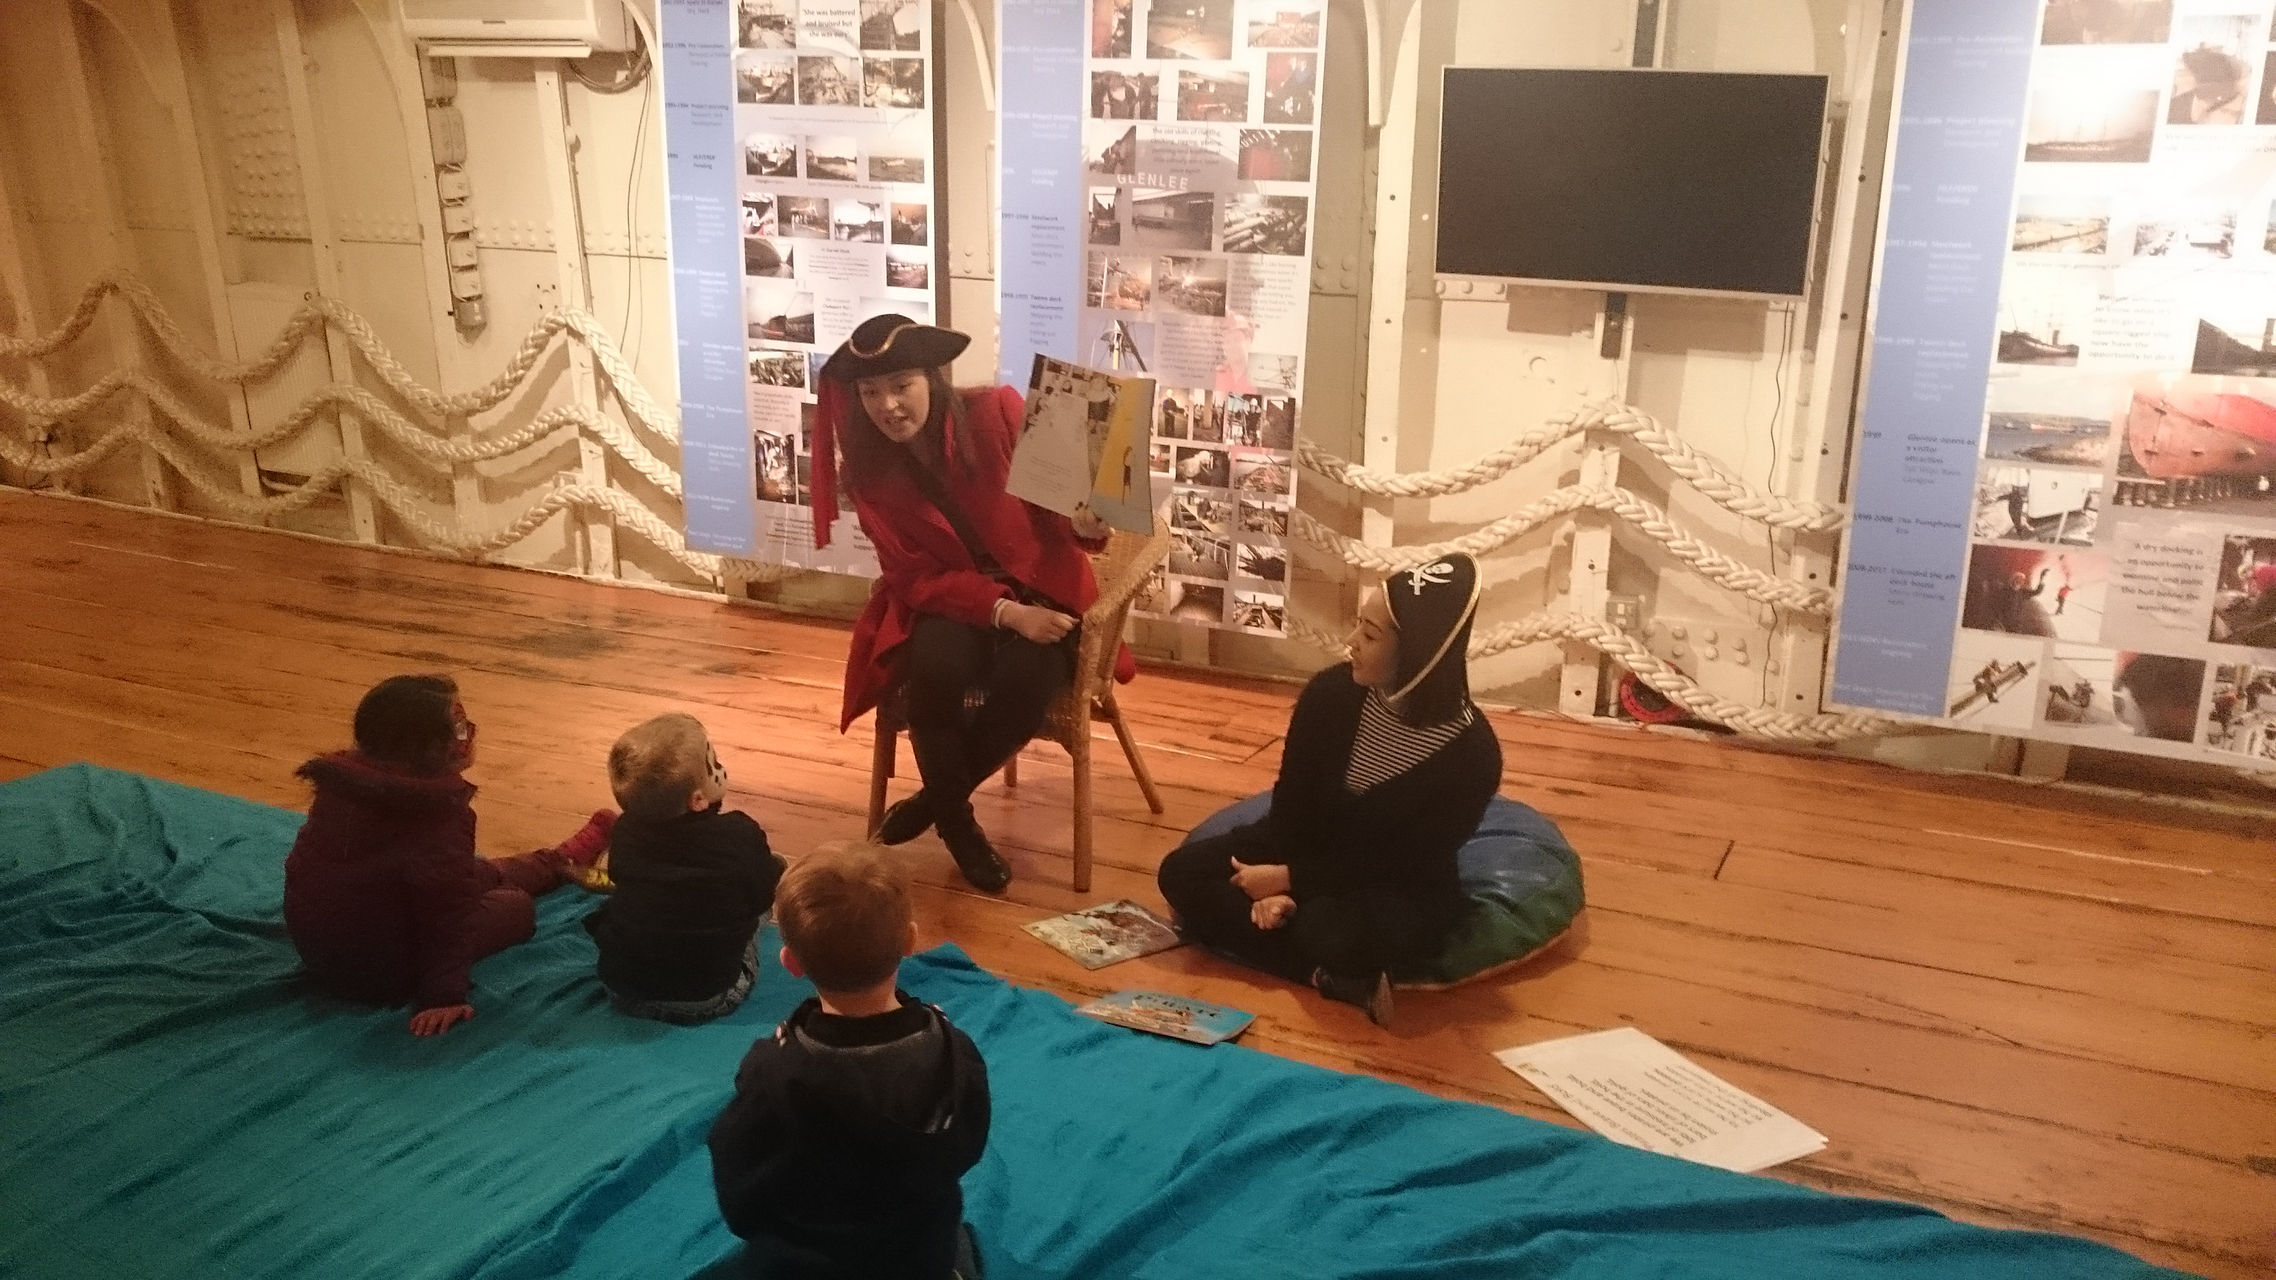 Storytelling - An example of a themed day with entertainment for the young